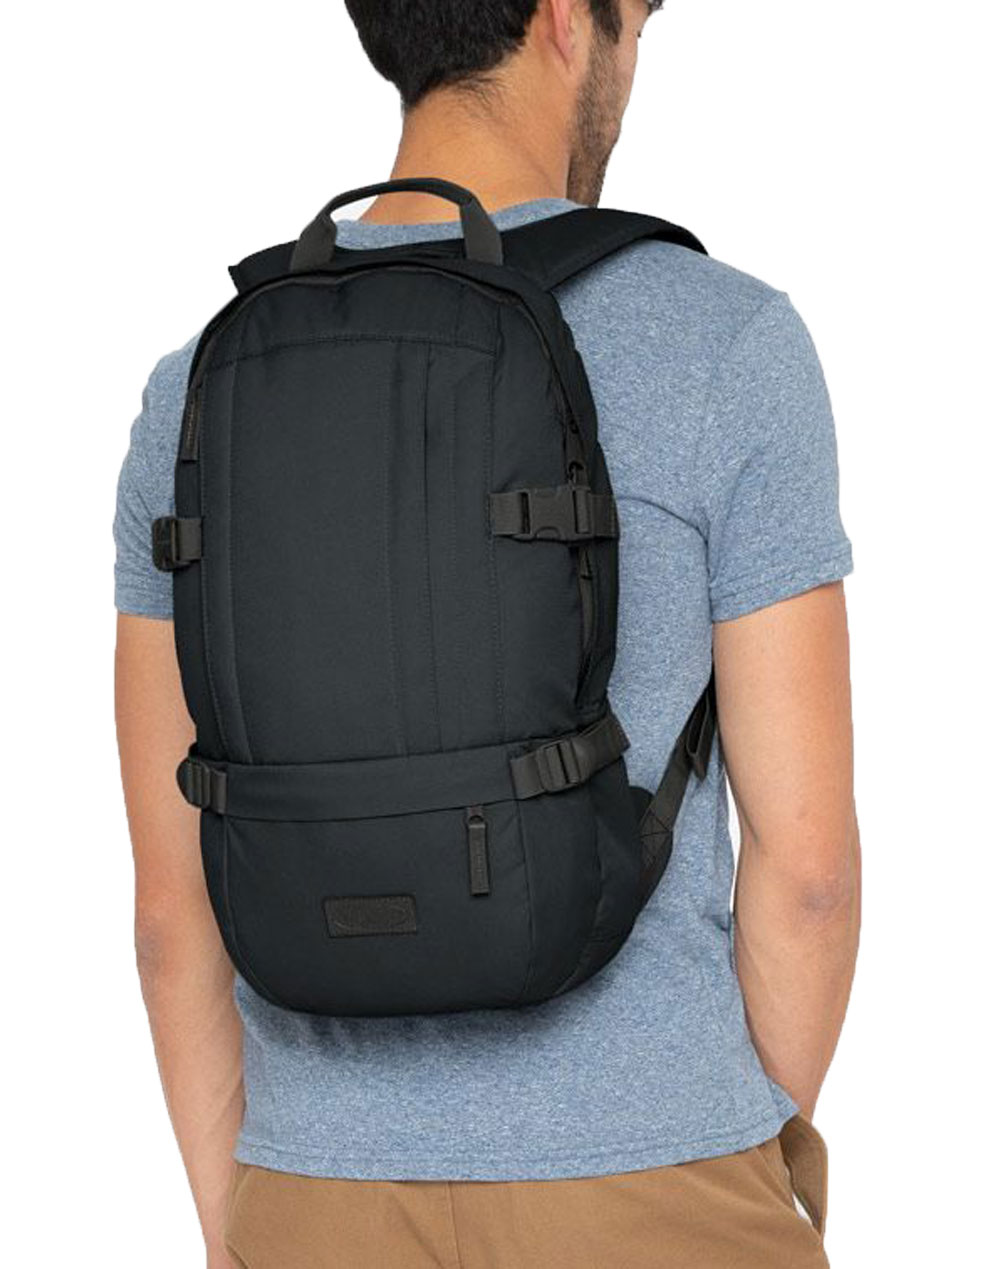 Eastpak Floid Backpack 16L (EK201 07I) Black